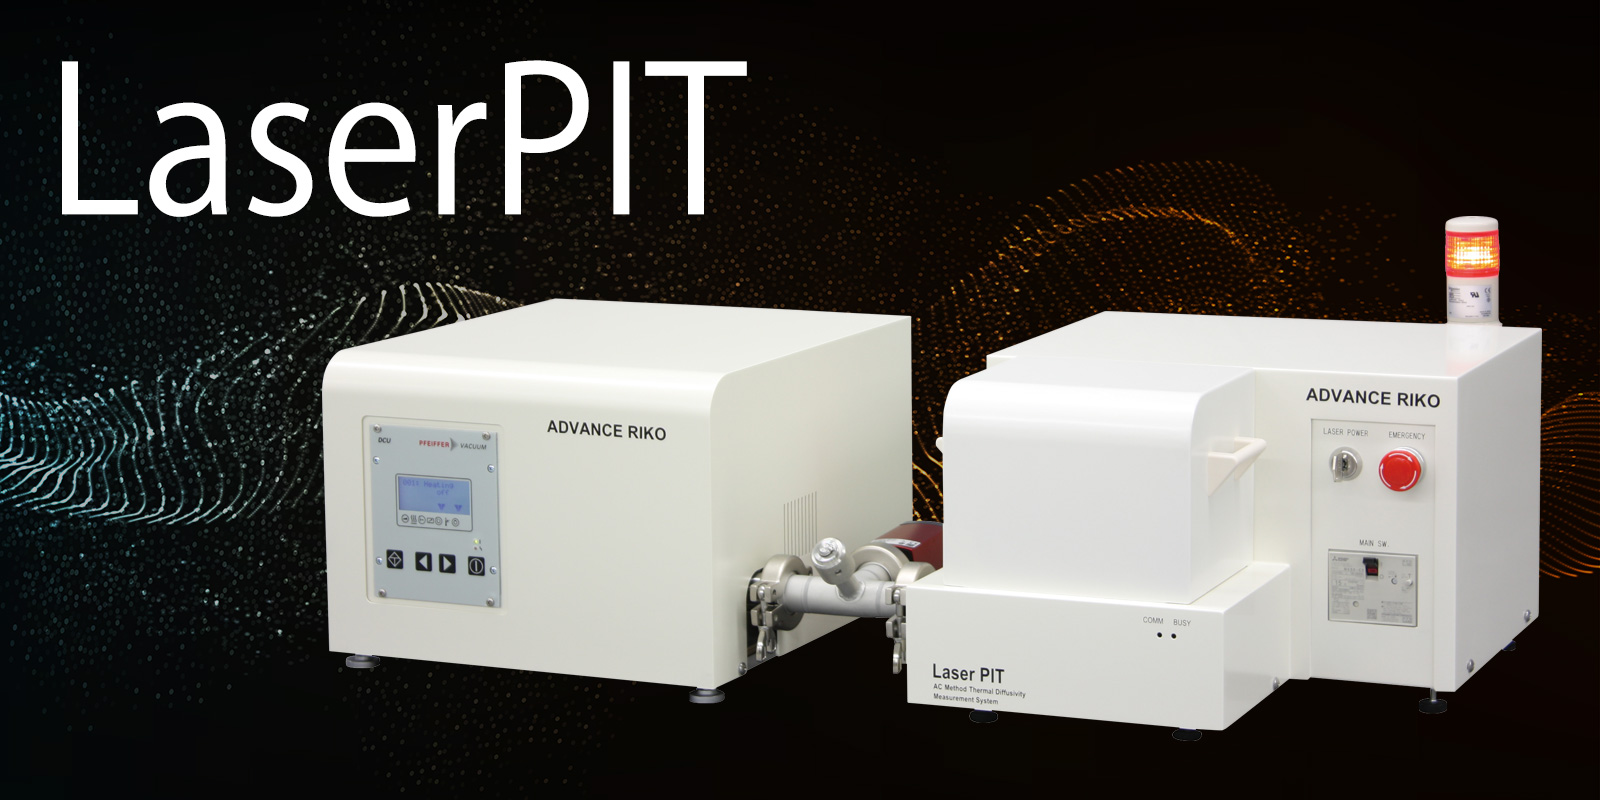 ac method thermal diffusivity measurement system laserpit advance